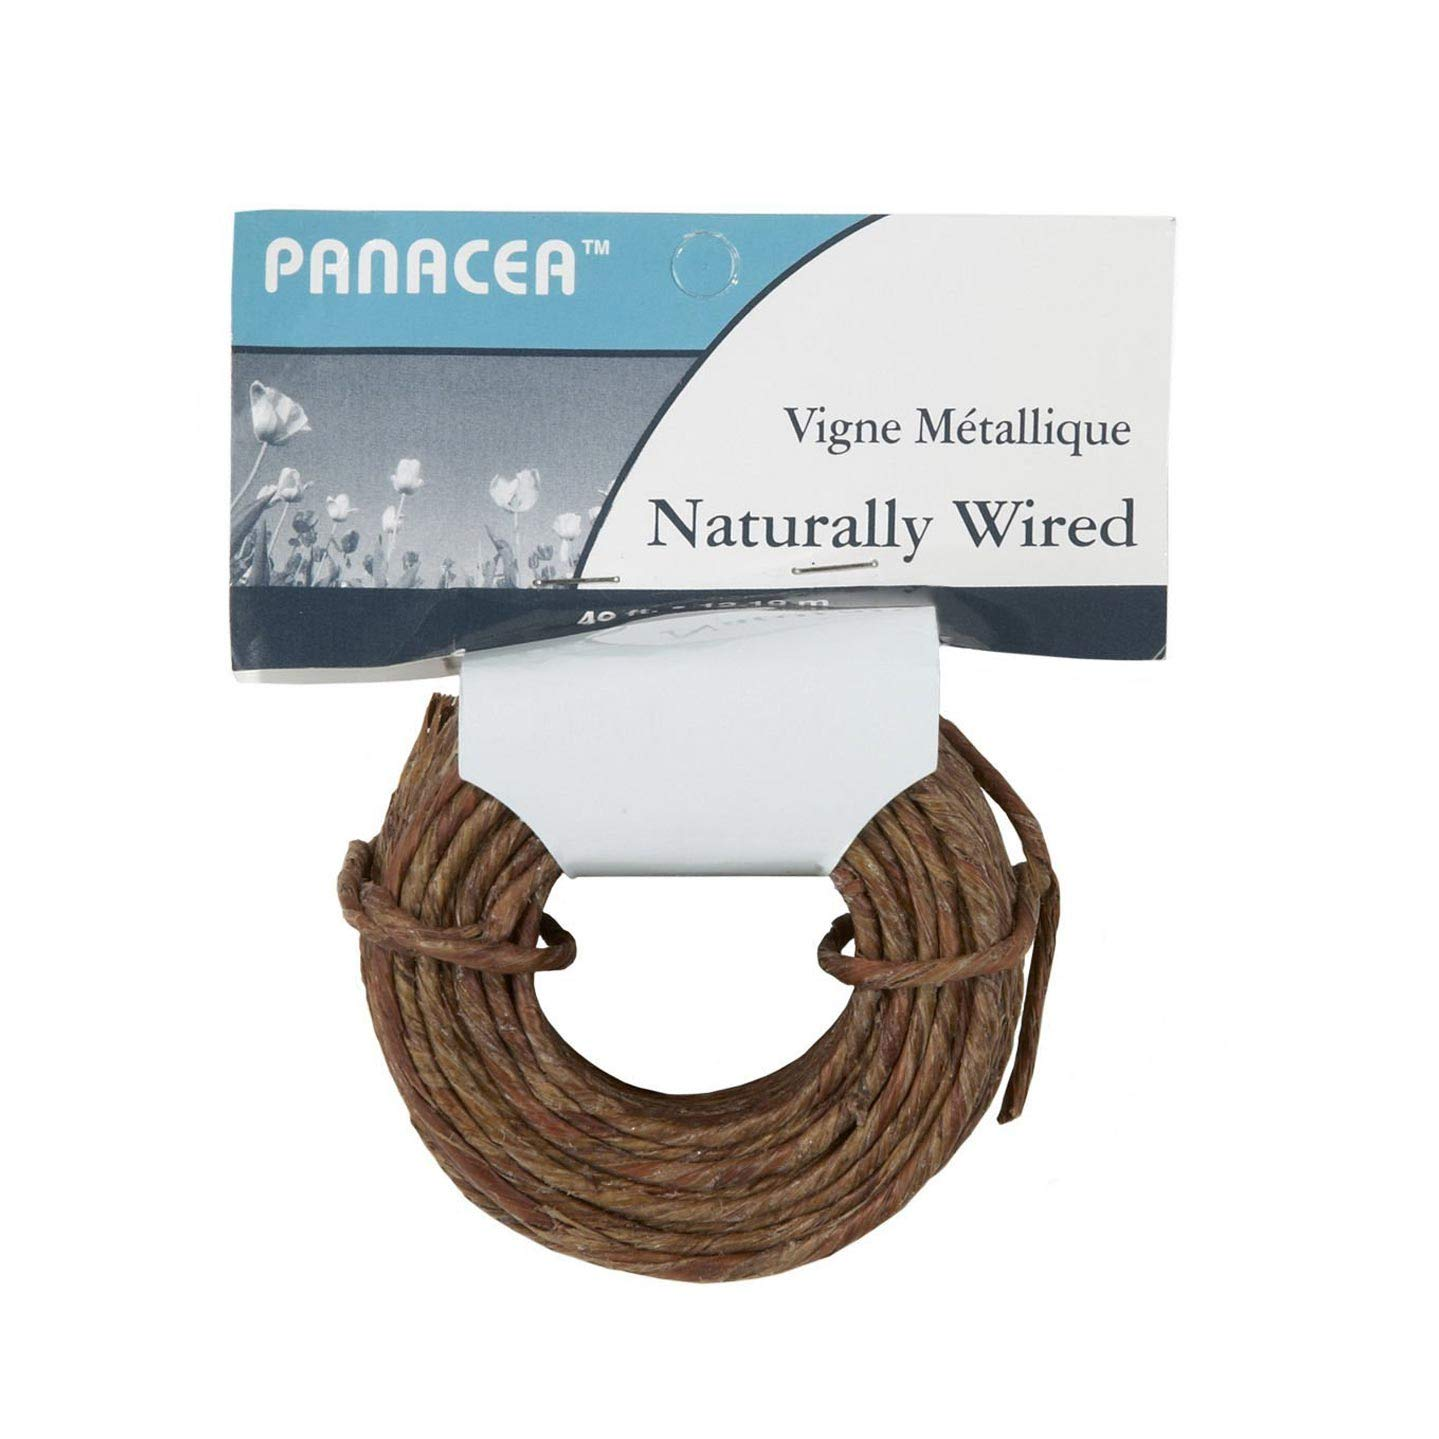 Darice Naturally Wrapped Vine Covered Craft Wire Rope with Rustic Feel for Wedding Crowns Woodland Crowns Head Wreaths Floral Arranging DIY Projects and Decorating 40 feet Brown by Panacea